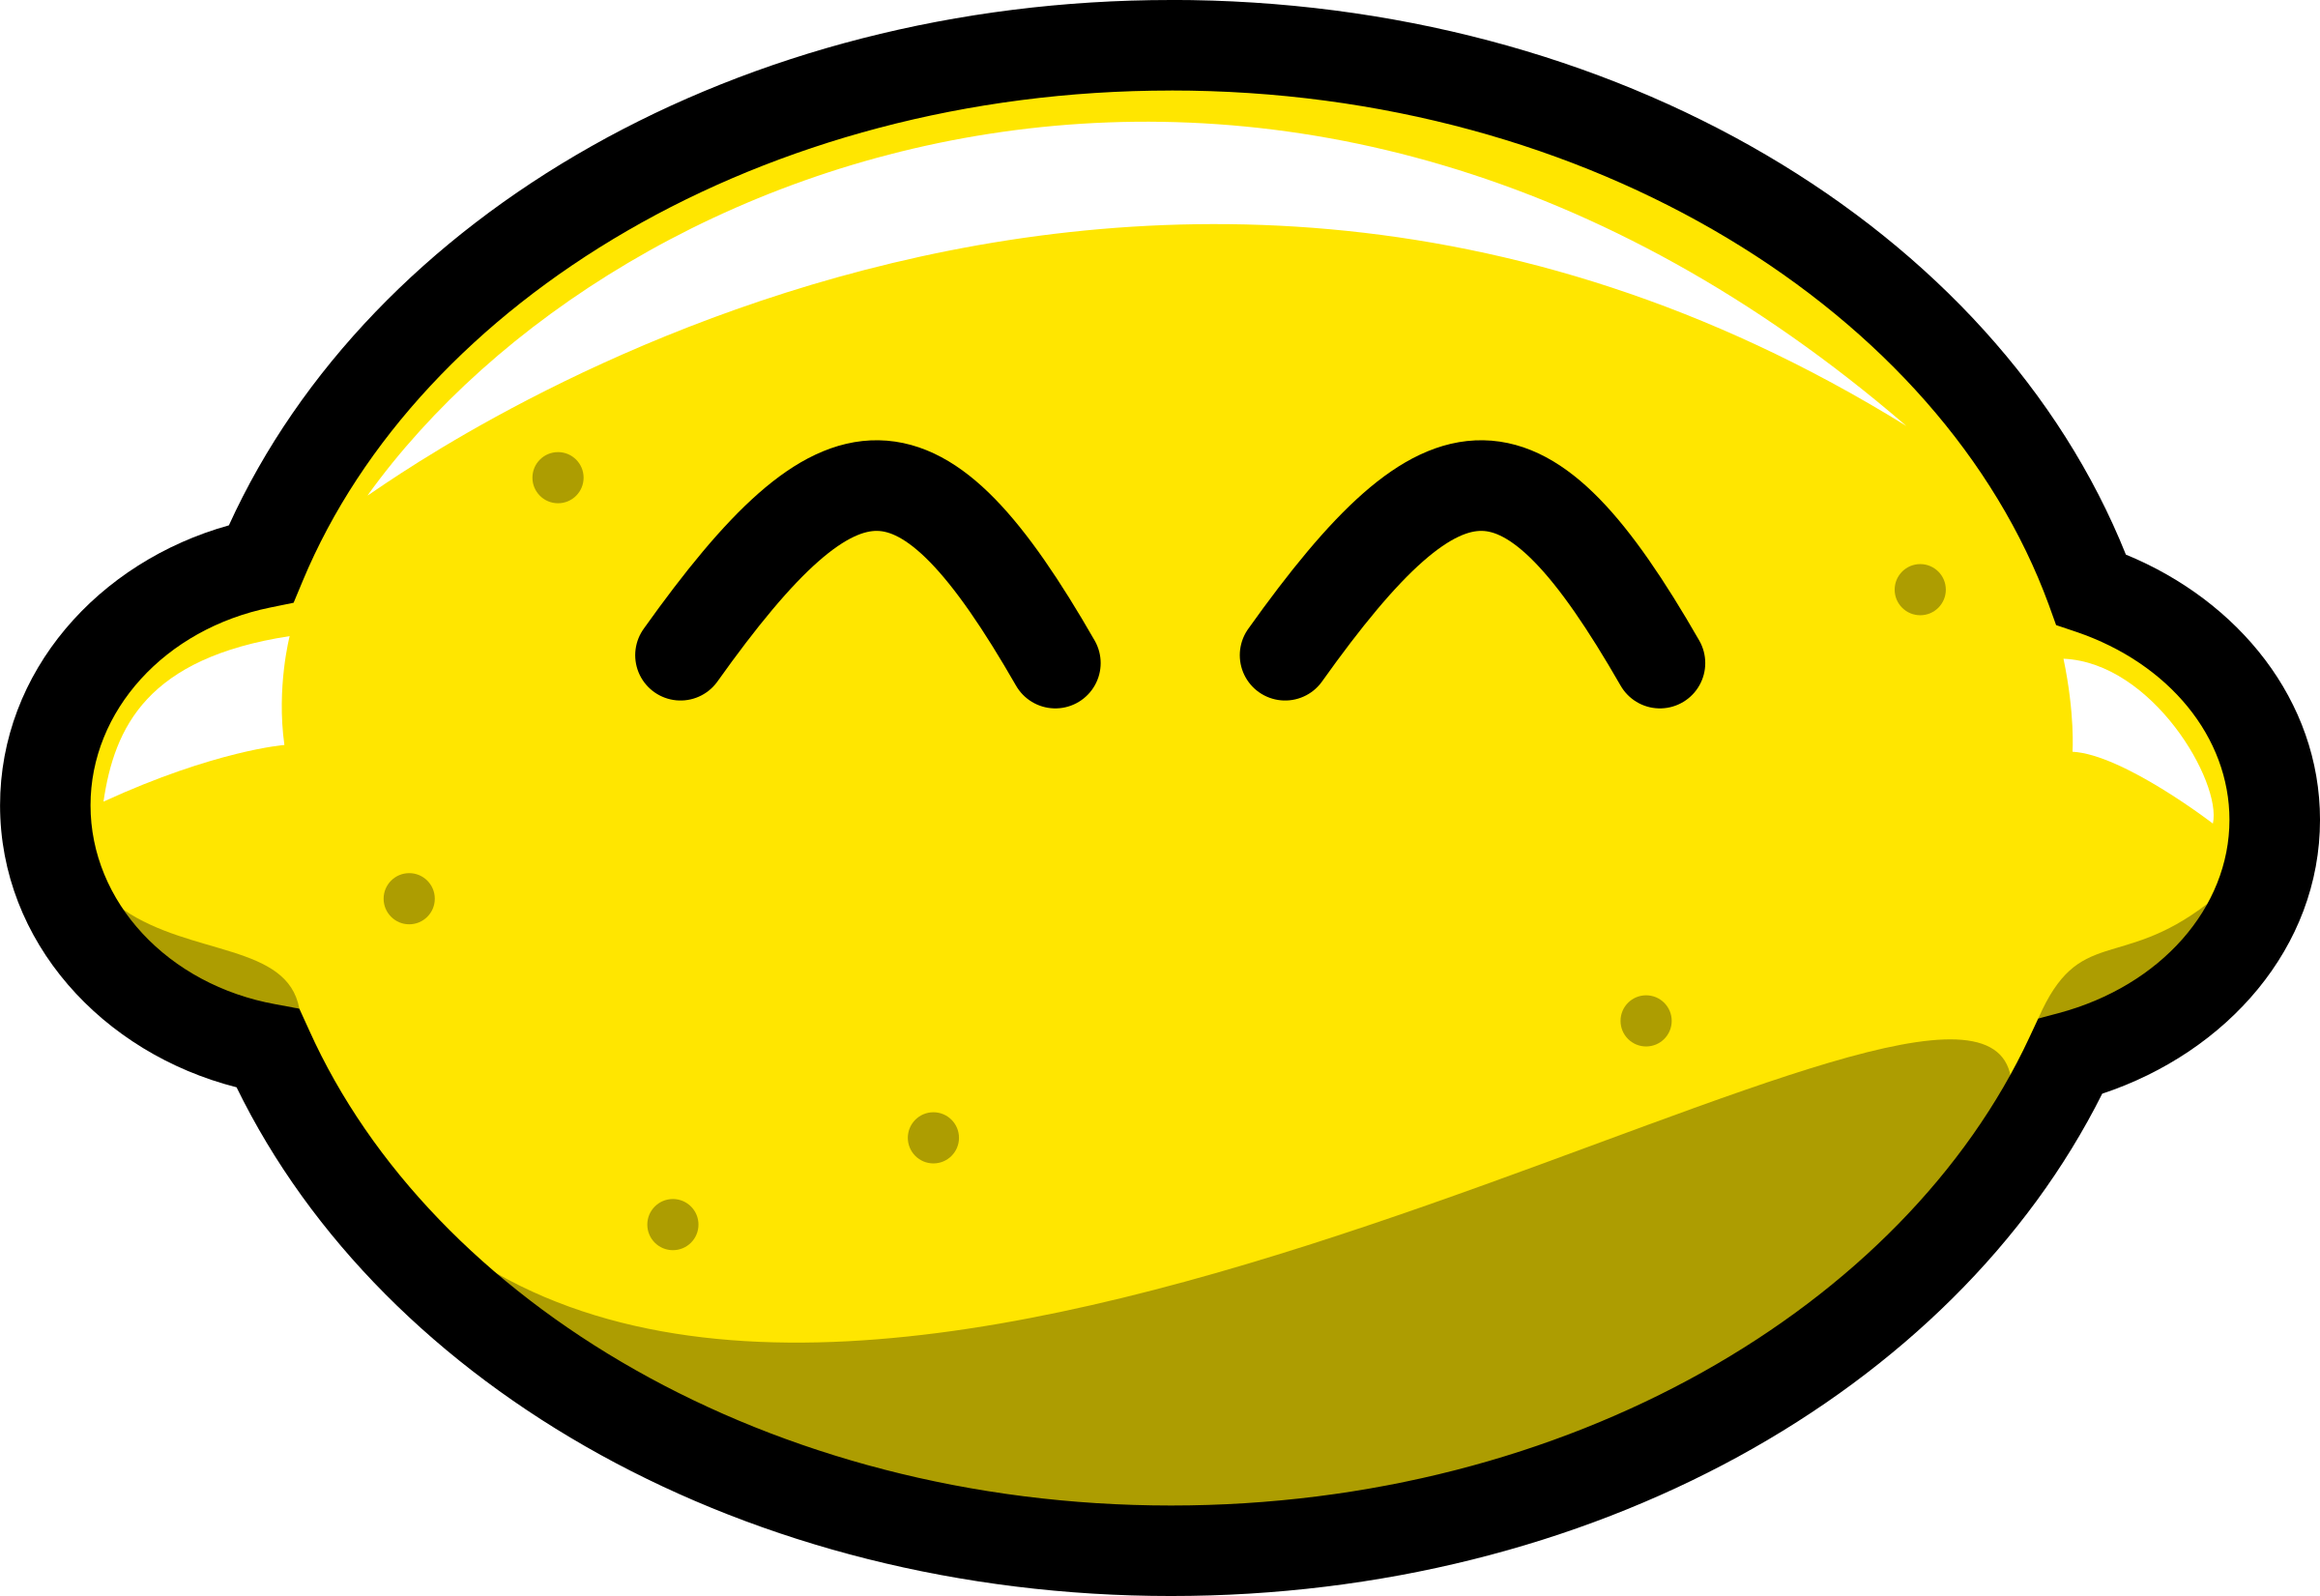 Pictures free download best. Lemons clipart happy lemon